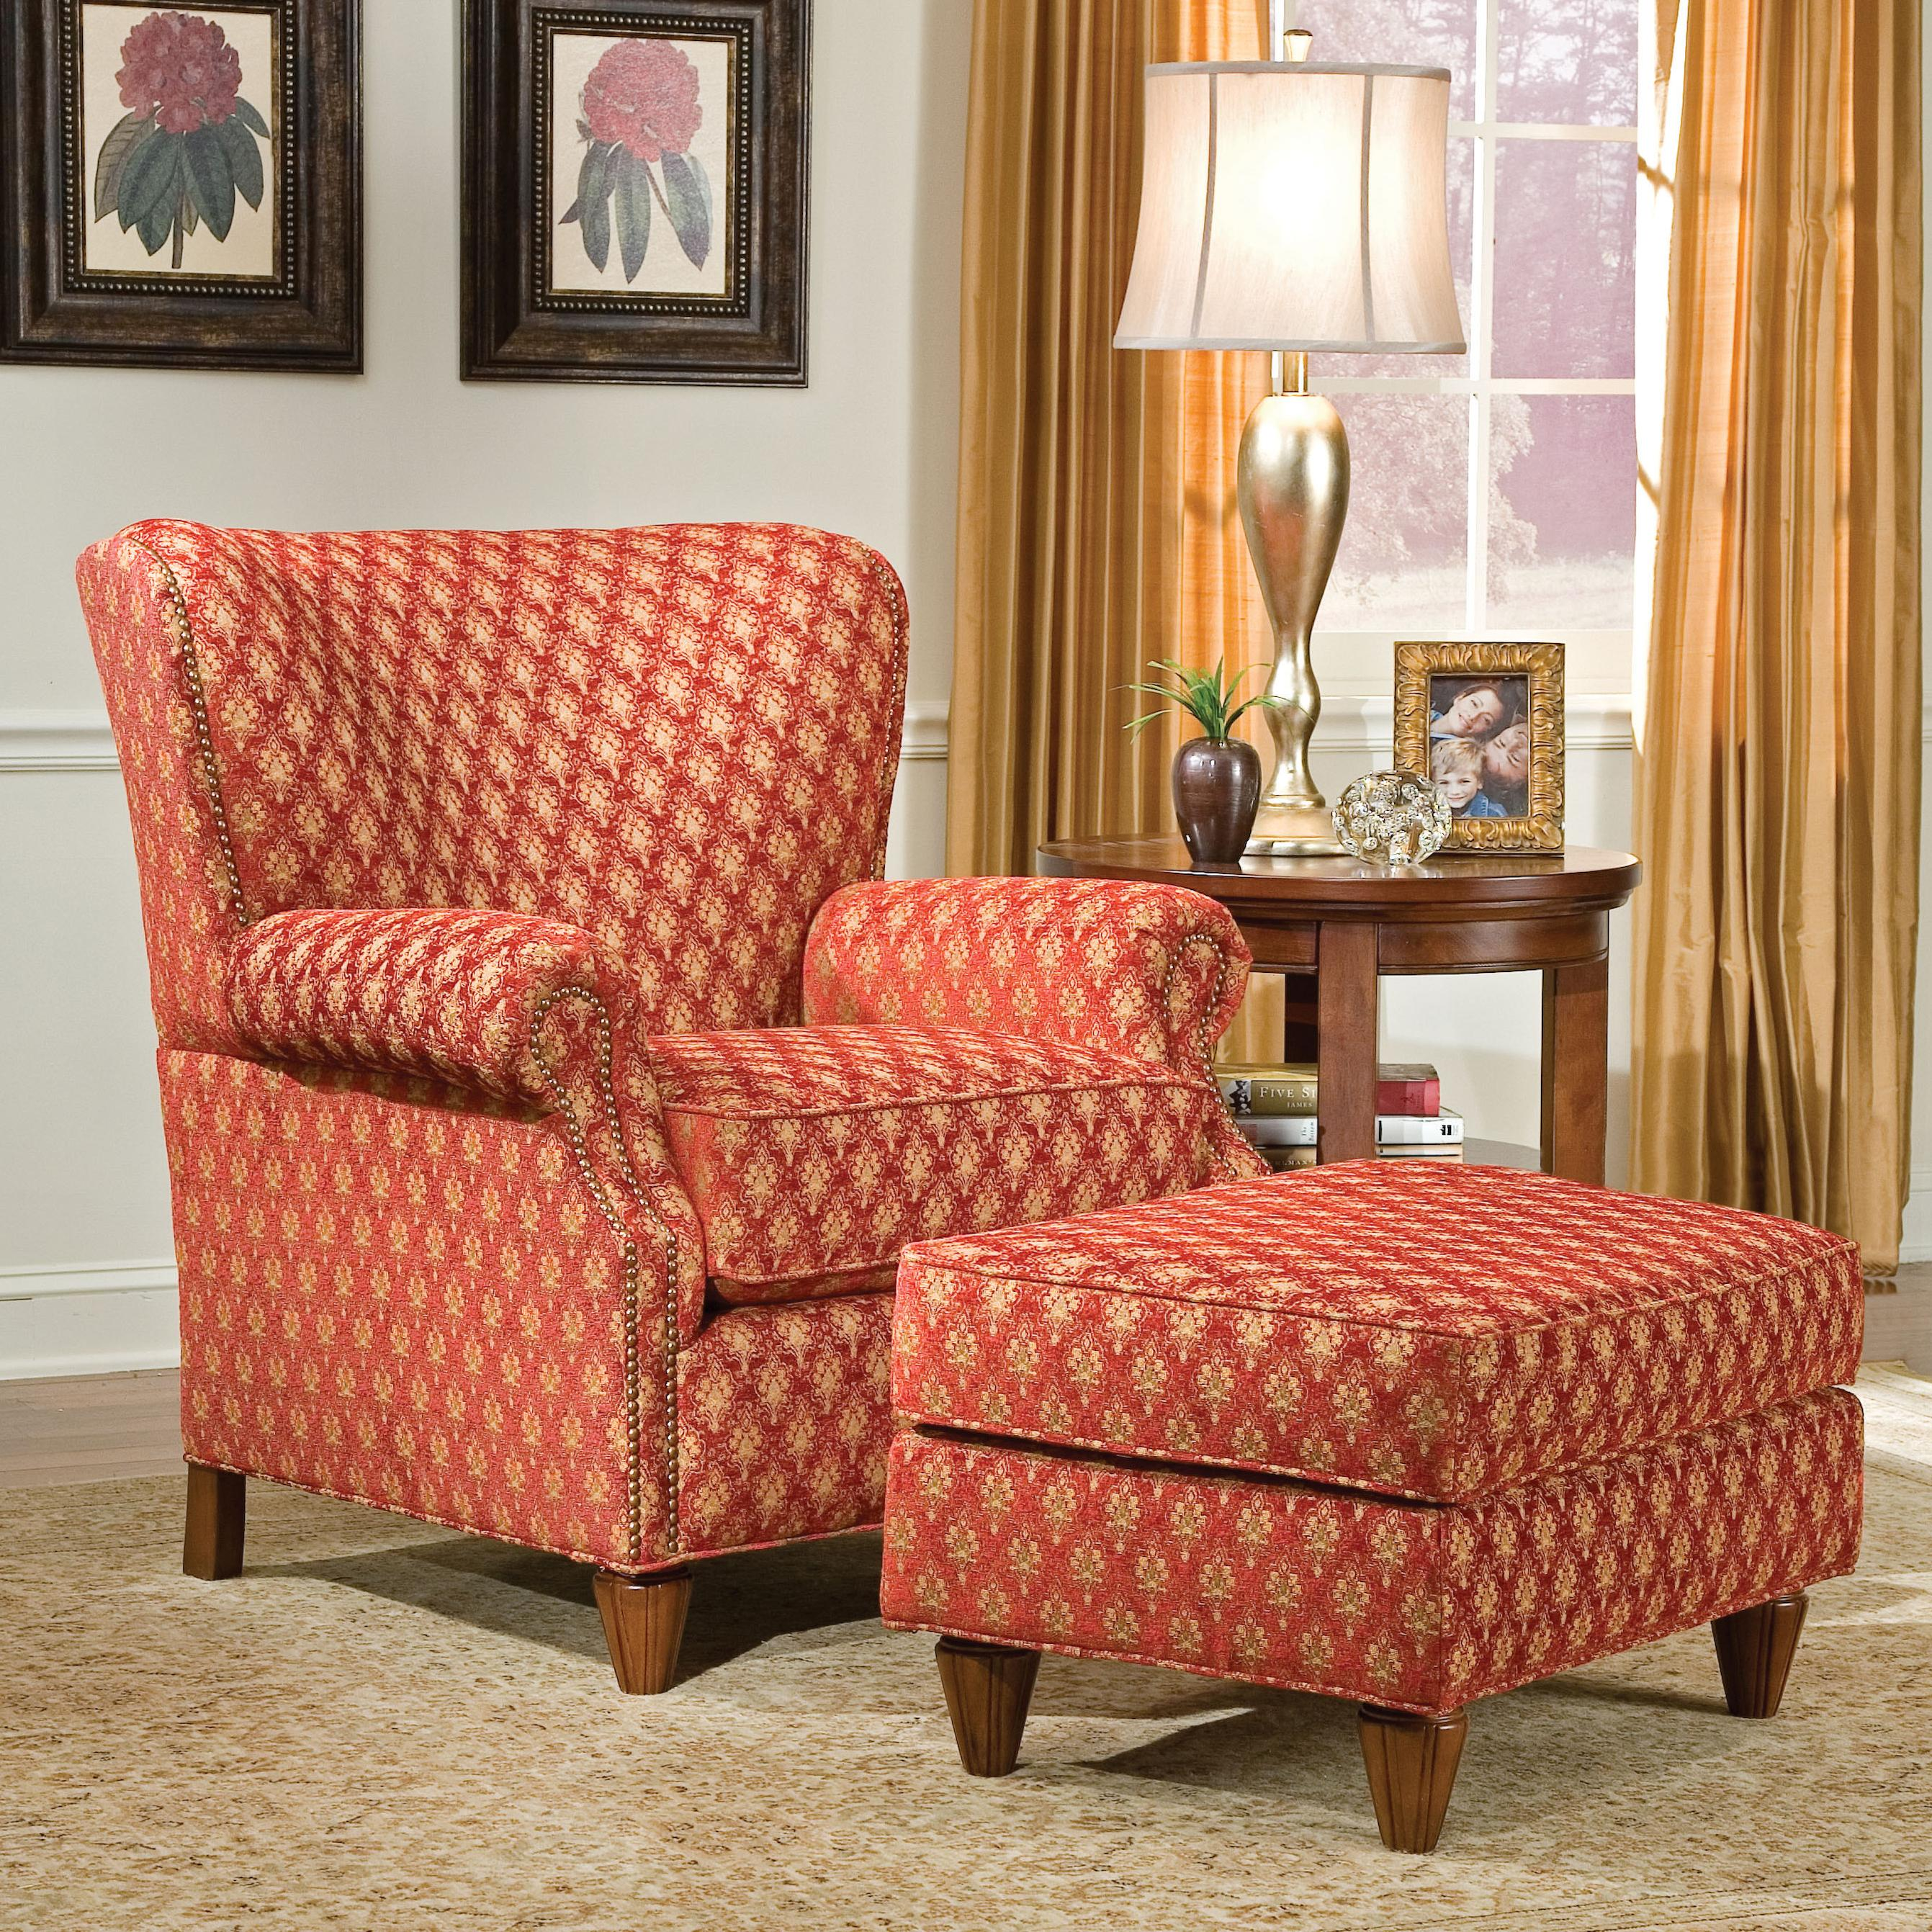 1403 Chair and Ottoman by Fairfield at Stuckey Furniture